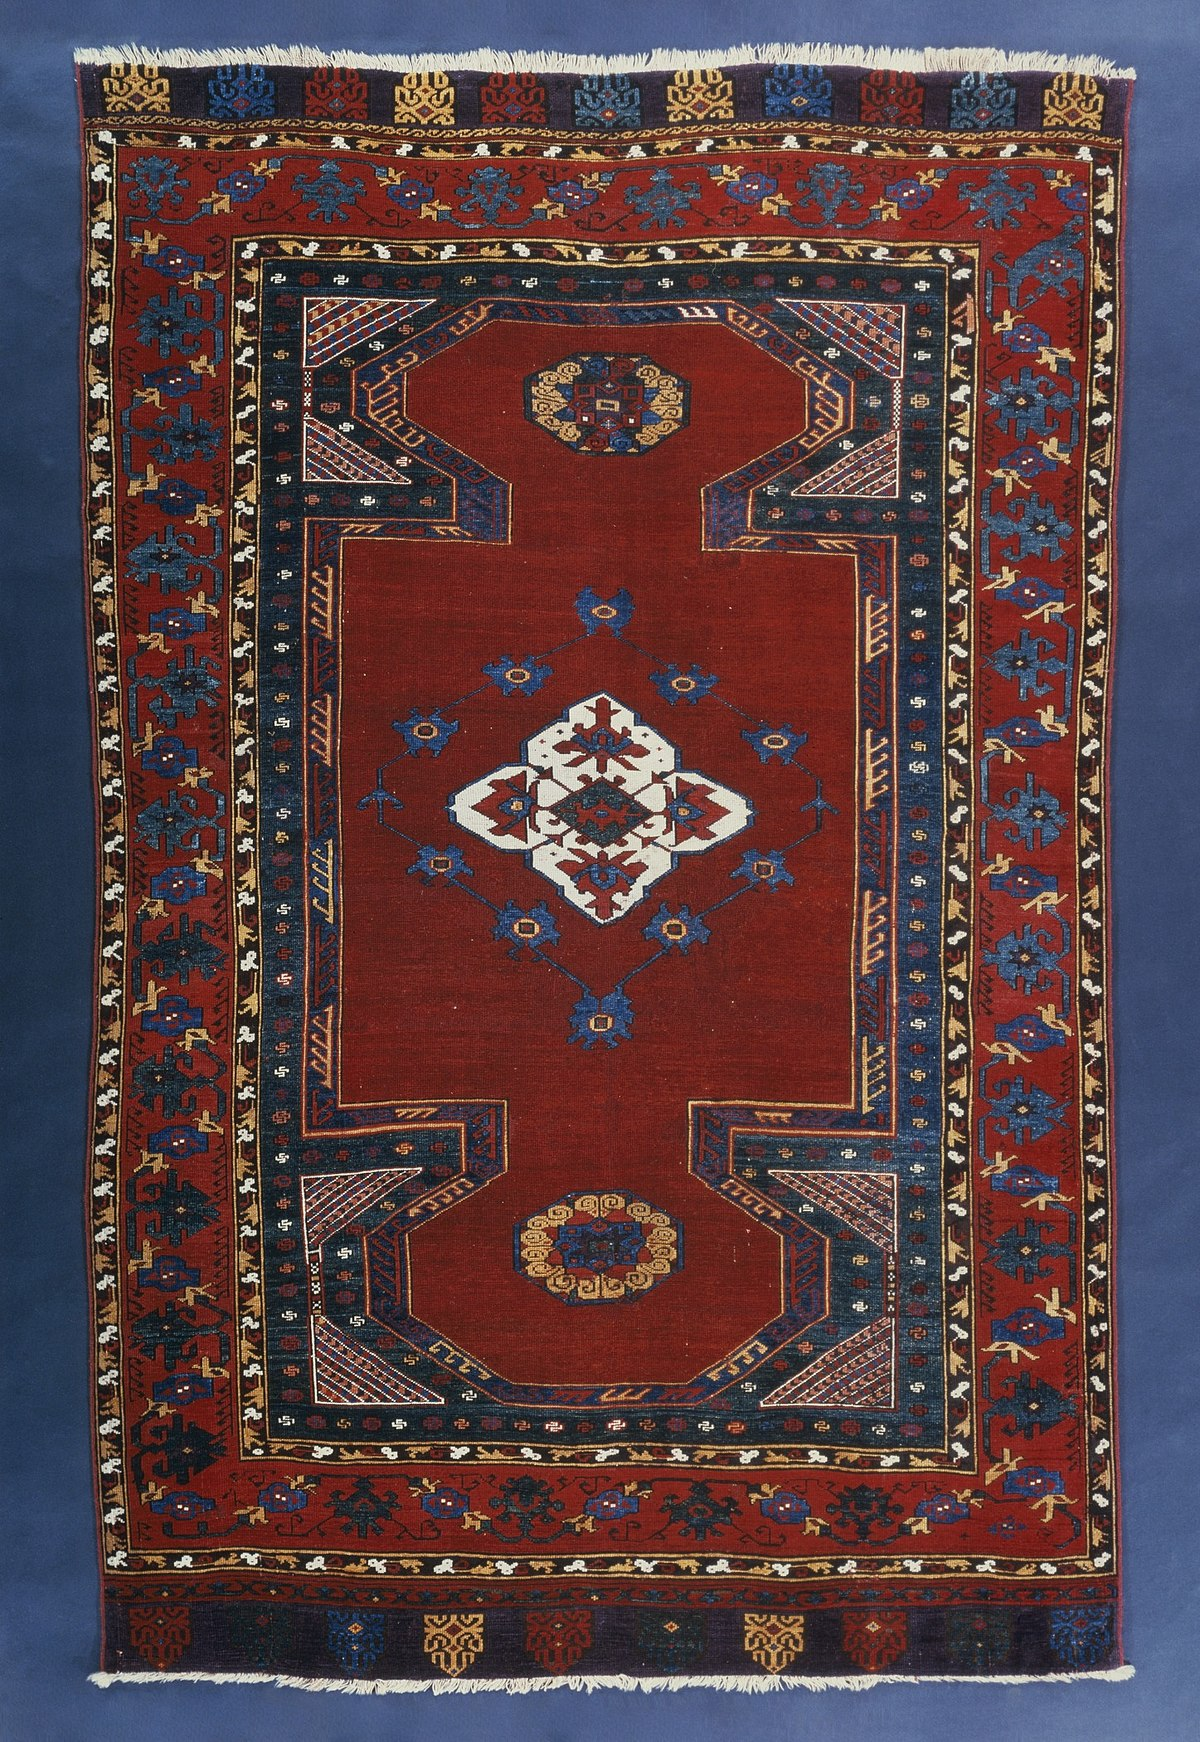 anatolian rug wikipedia. Black Bedroom Furniture Sets. Home Design Ideas